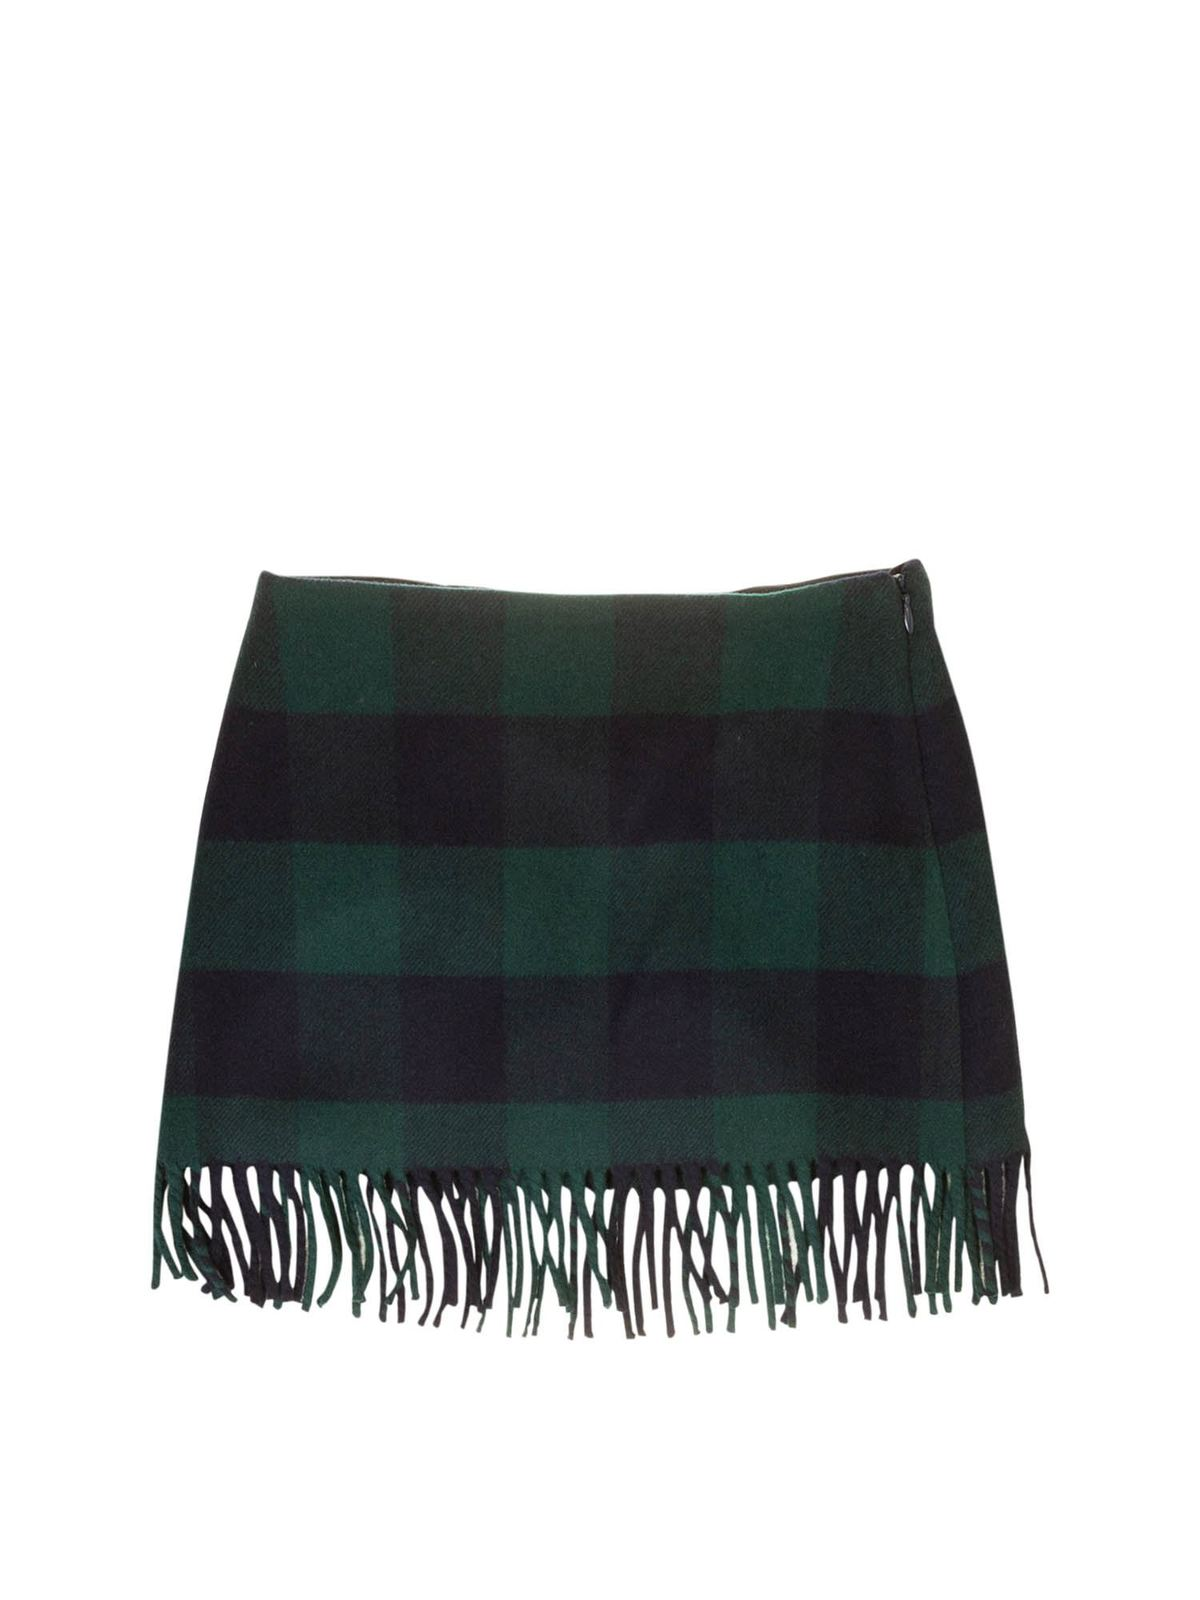 IL GUFO CHECK SKIRT IN BLUE AND GREEN